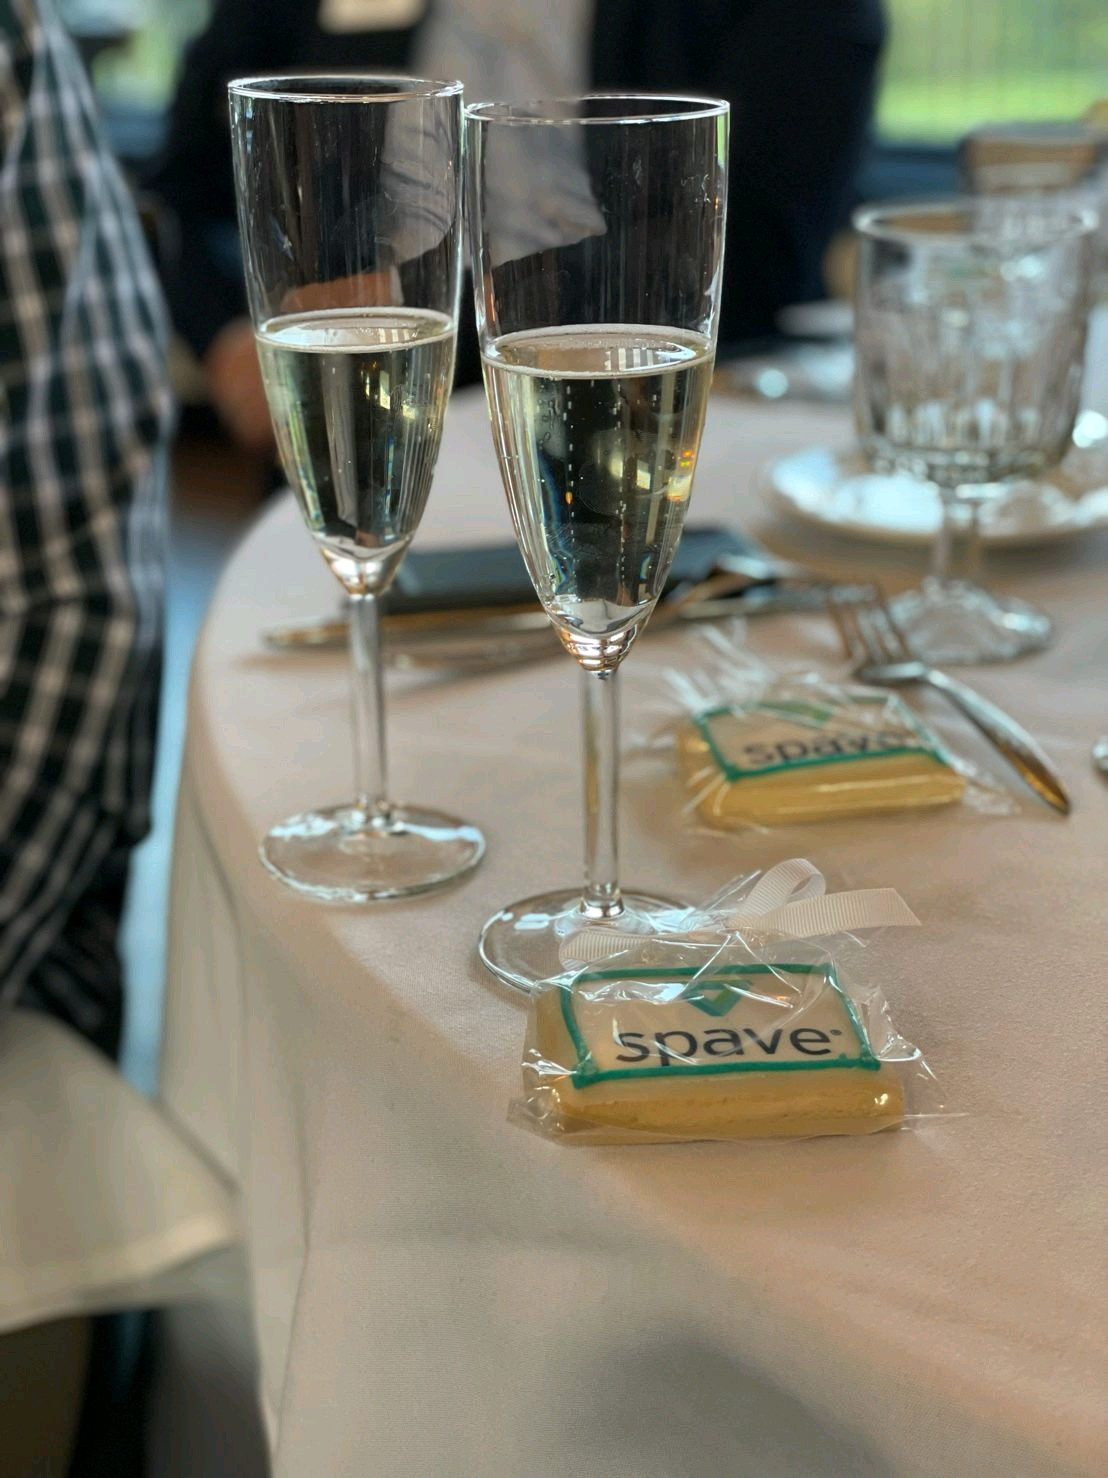 Spave Event Celebrates Acquisition of Spave by Reseda Group